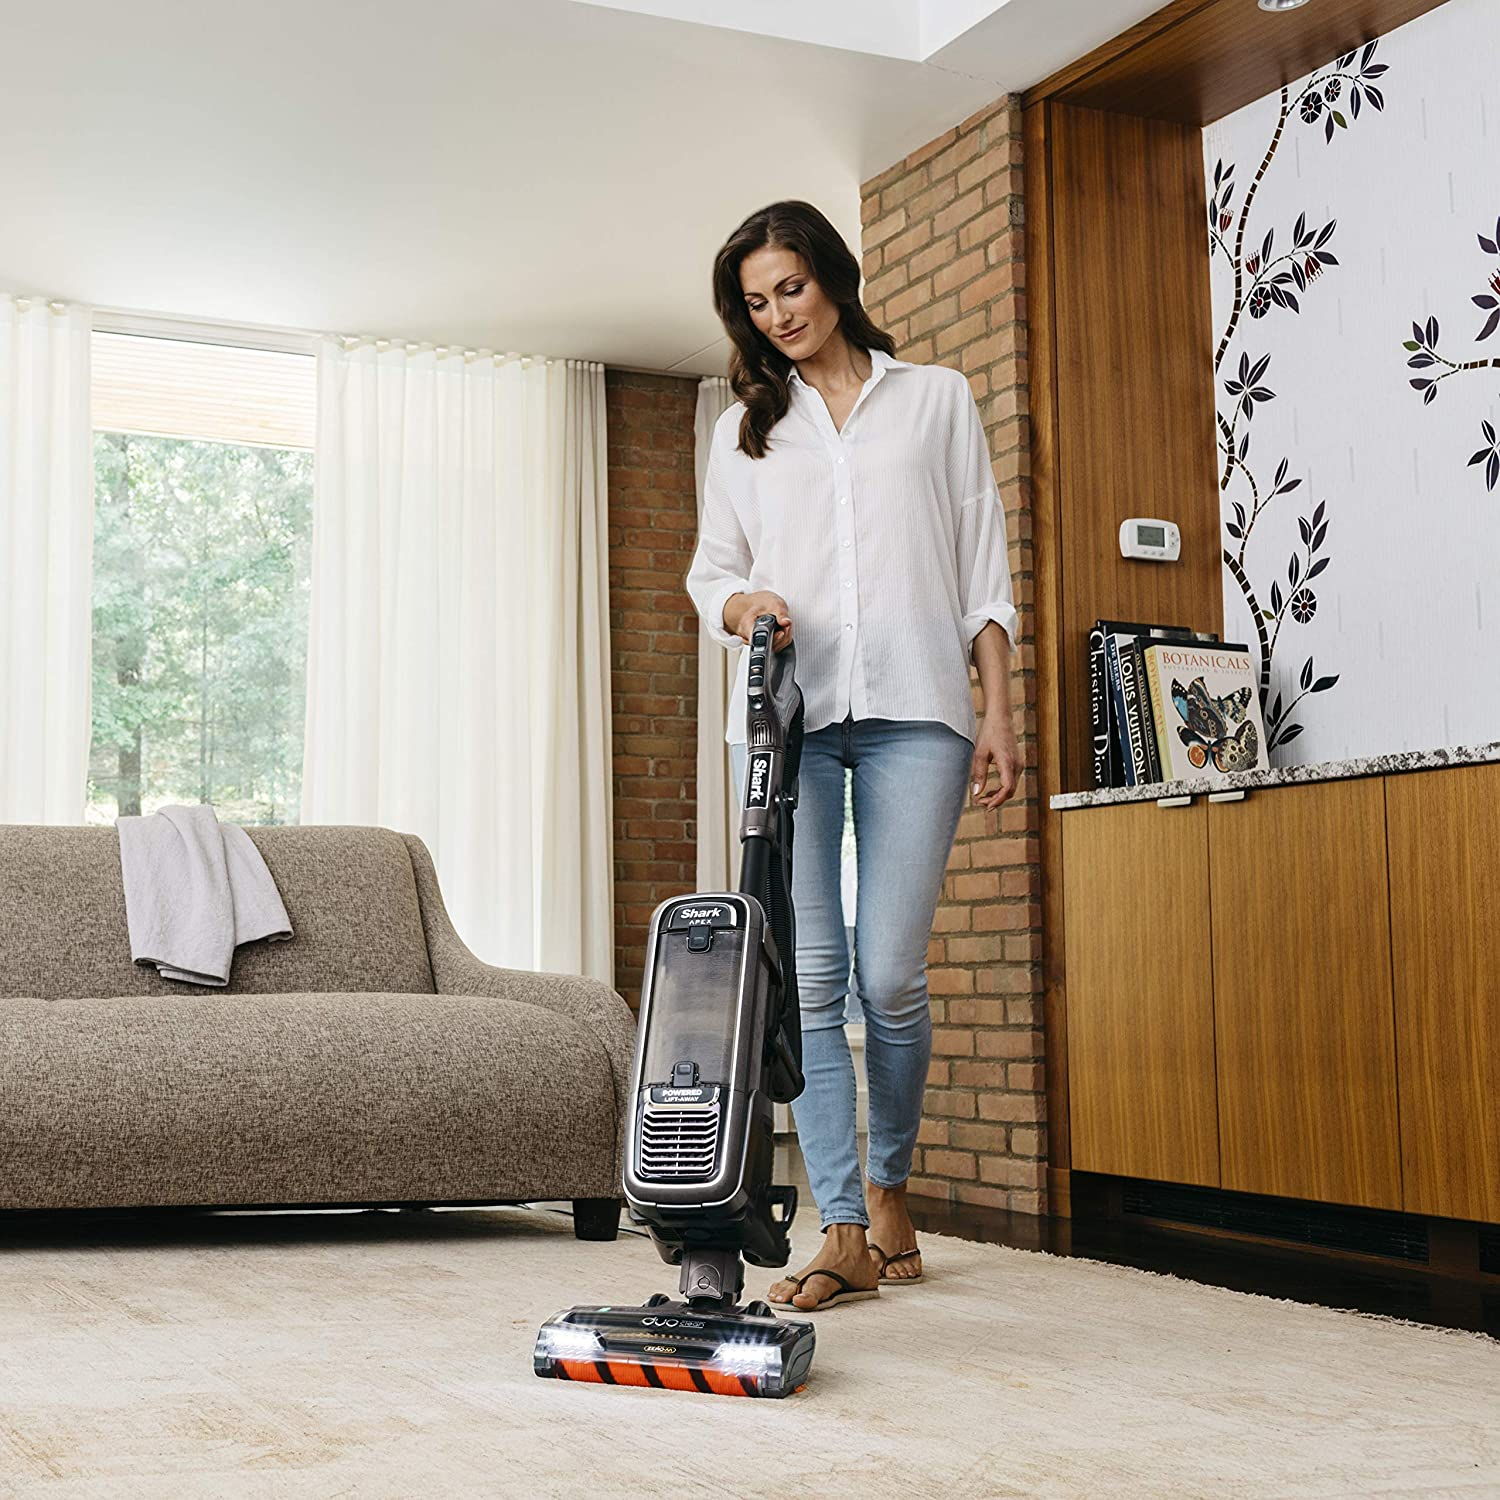 The Best 5 HEPA Vacuums For Allergies 22